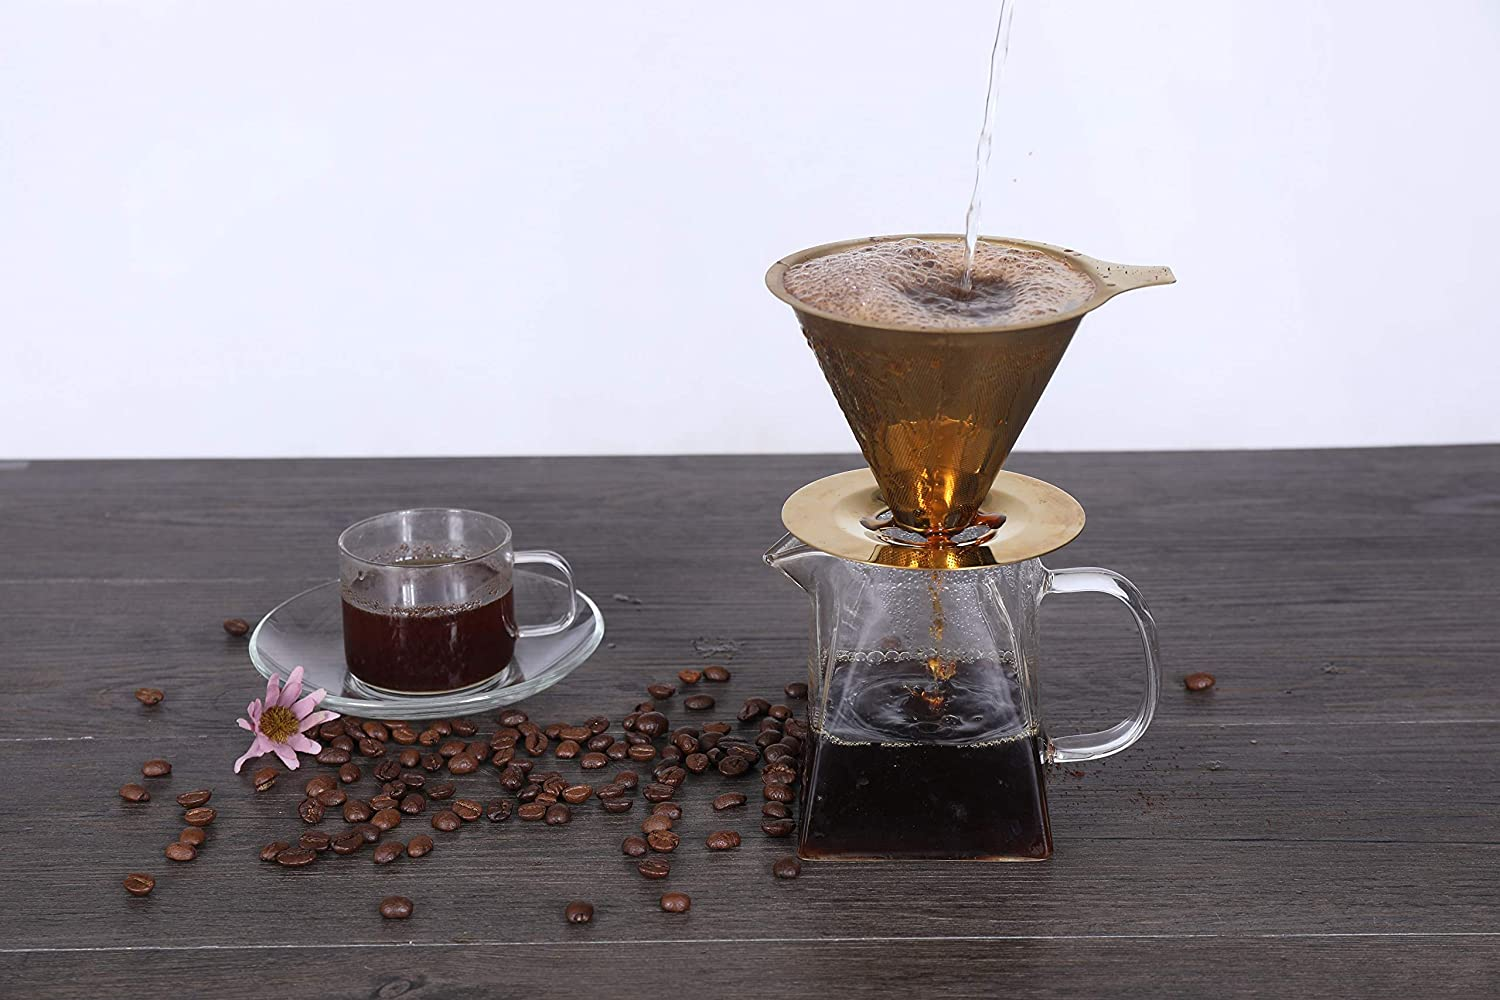 MJM COFFEE DRIPPER SET brush include Stainless Steel Gold Coffee Drip Cone Coffee Filter Funnel Cone Pour Over Coffee Dripper Pour Over Coffee Maker Reusable Coffee mesh Spoon clip